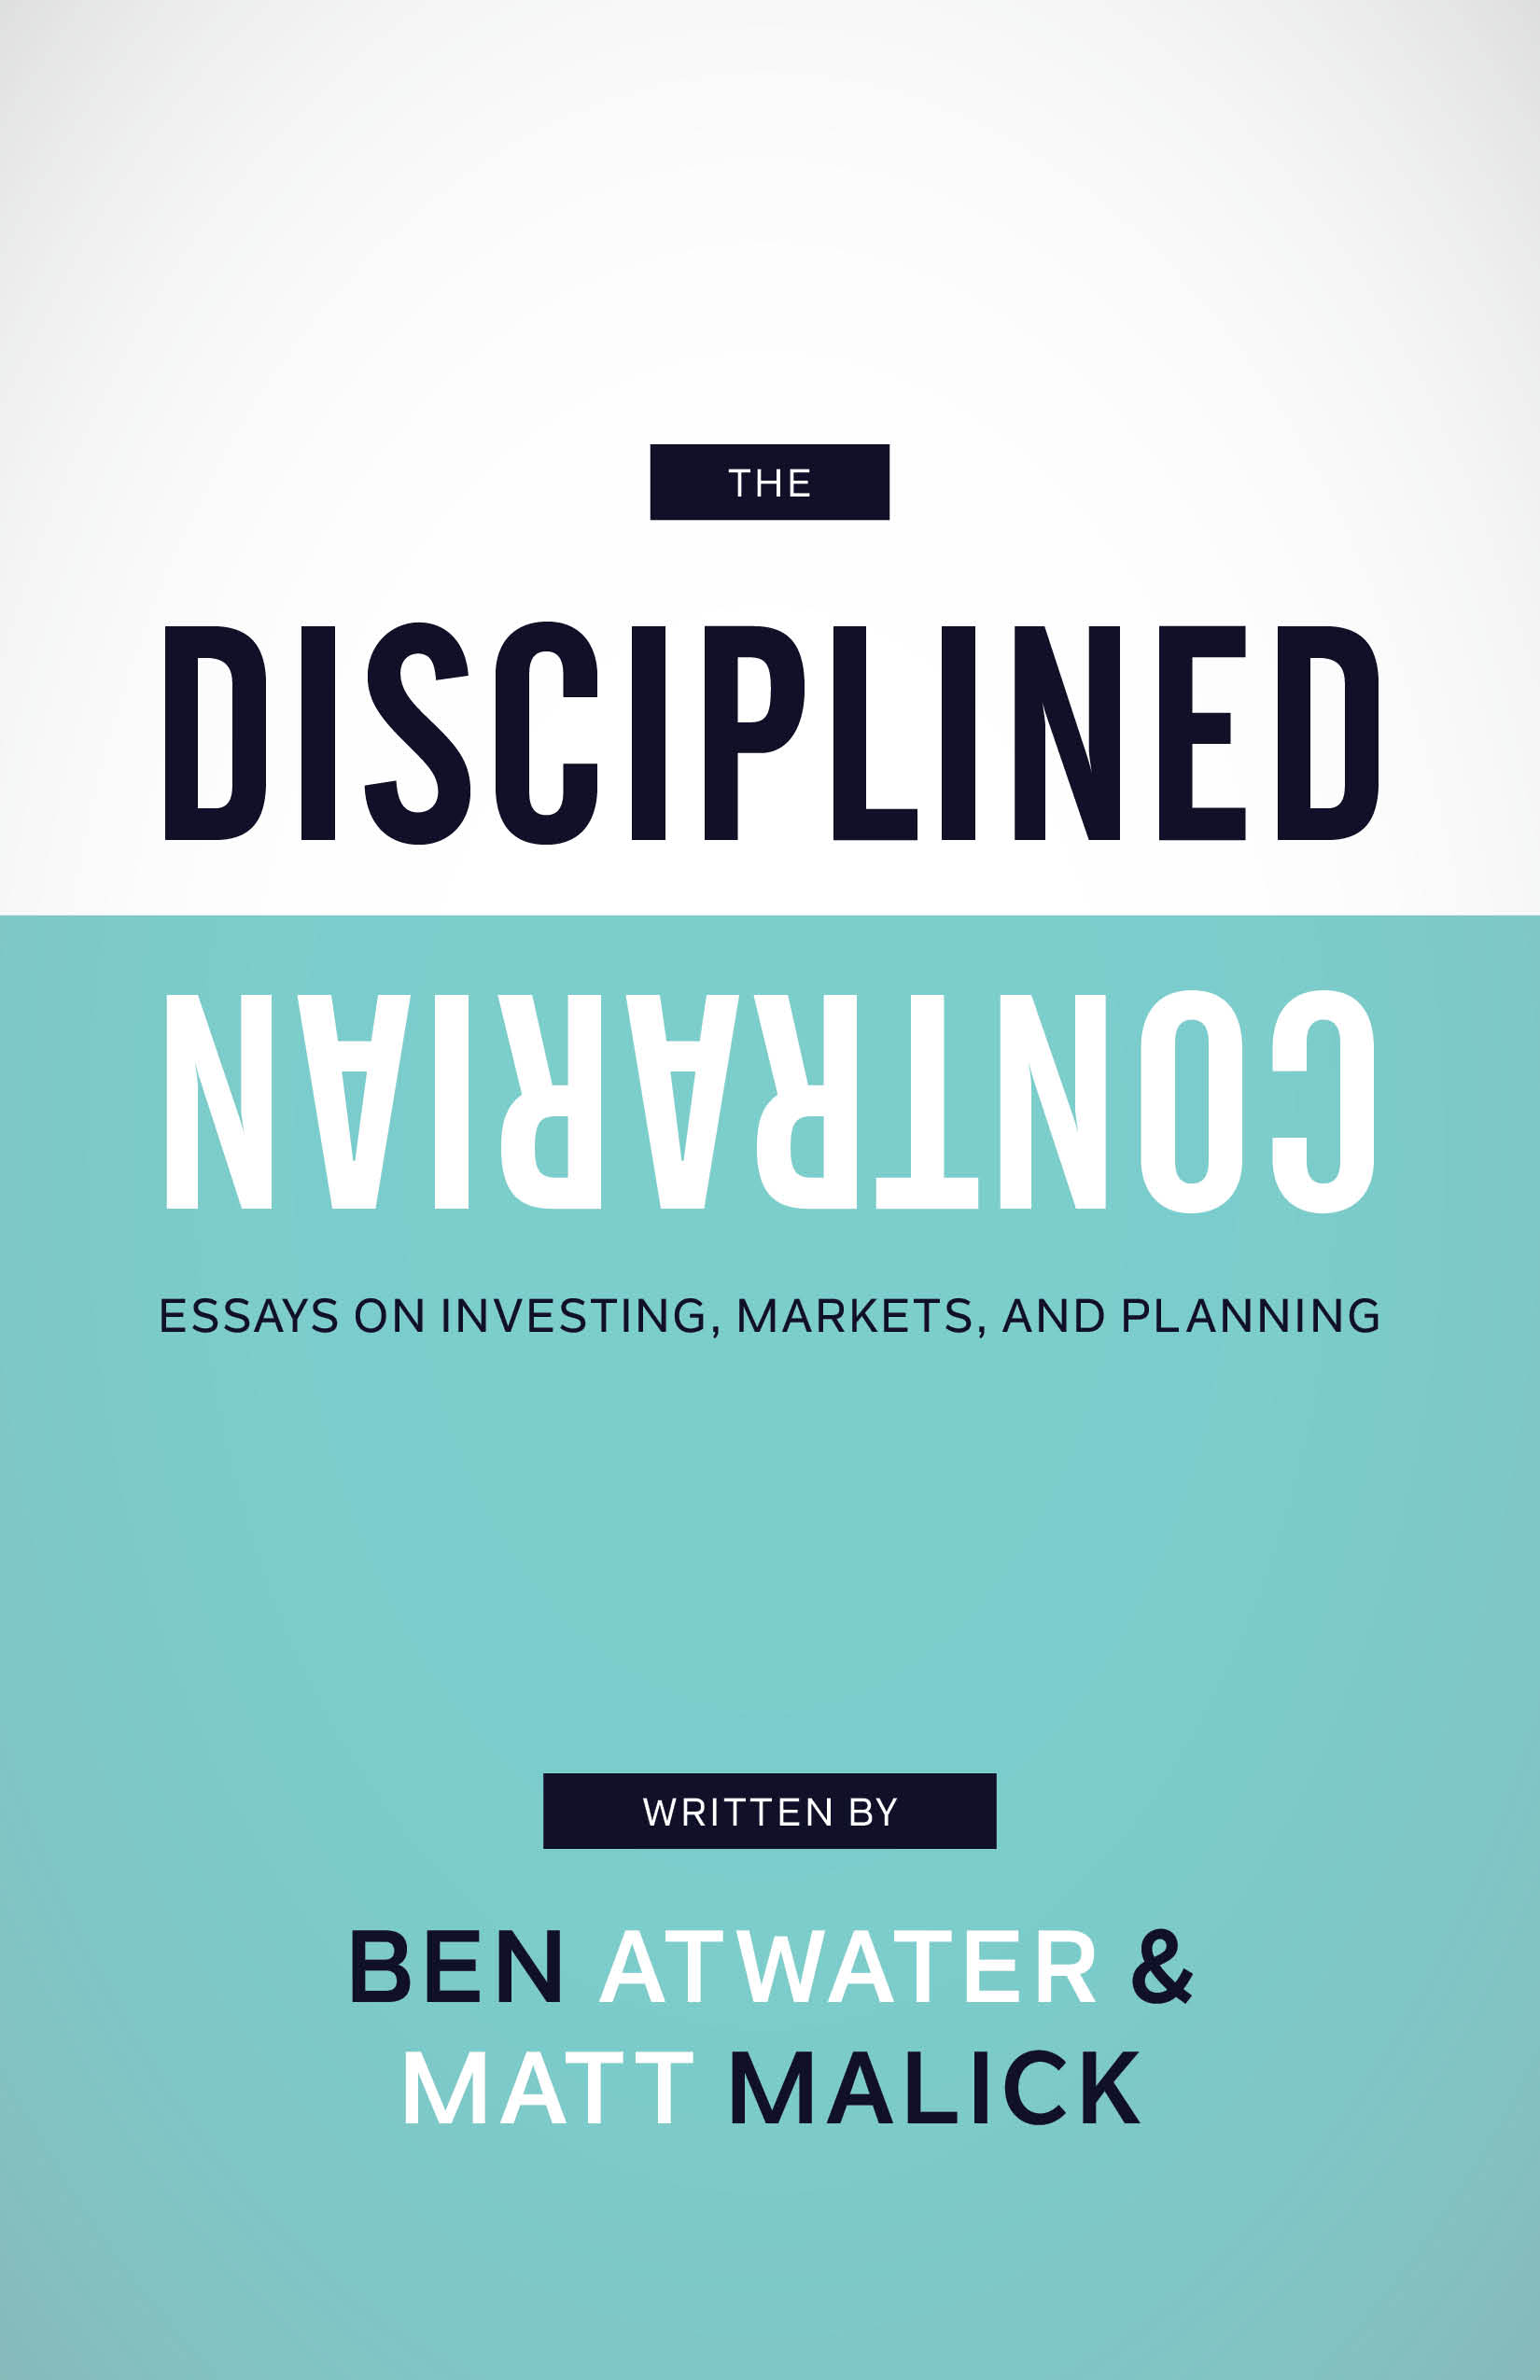 The Disciplined Contrarian